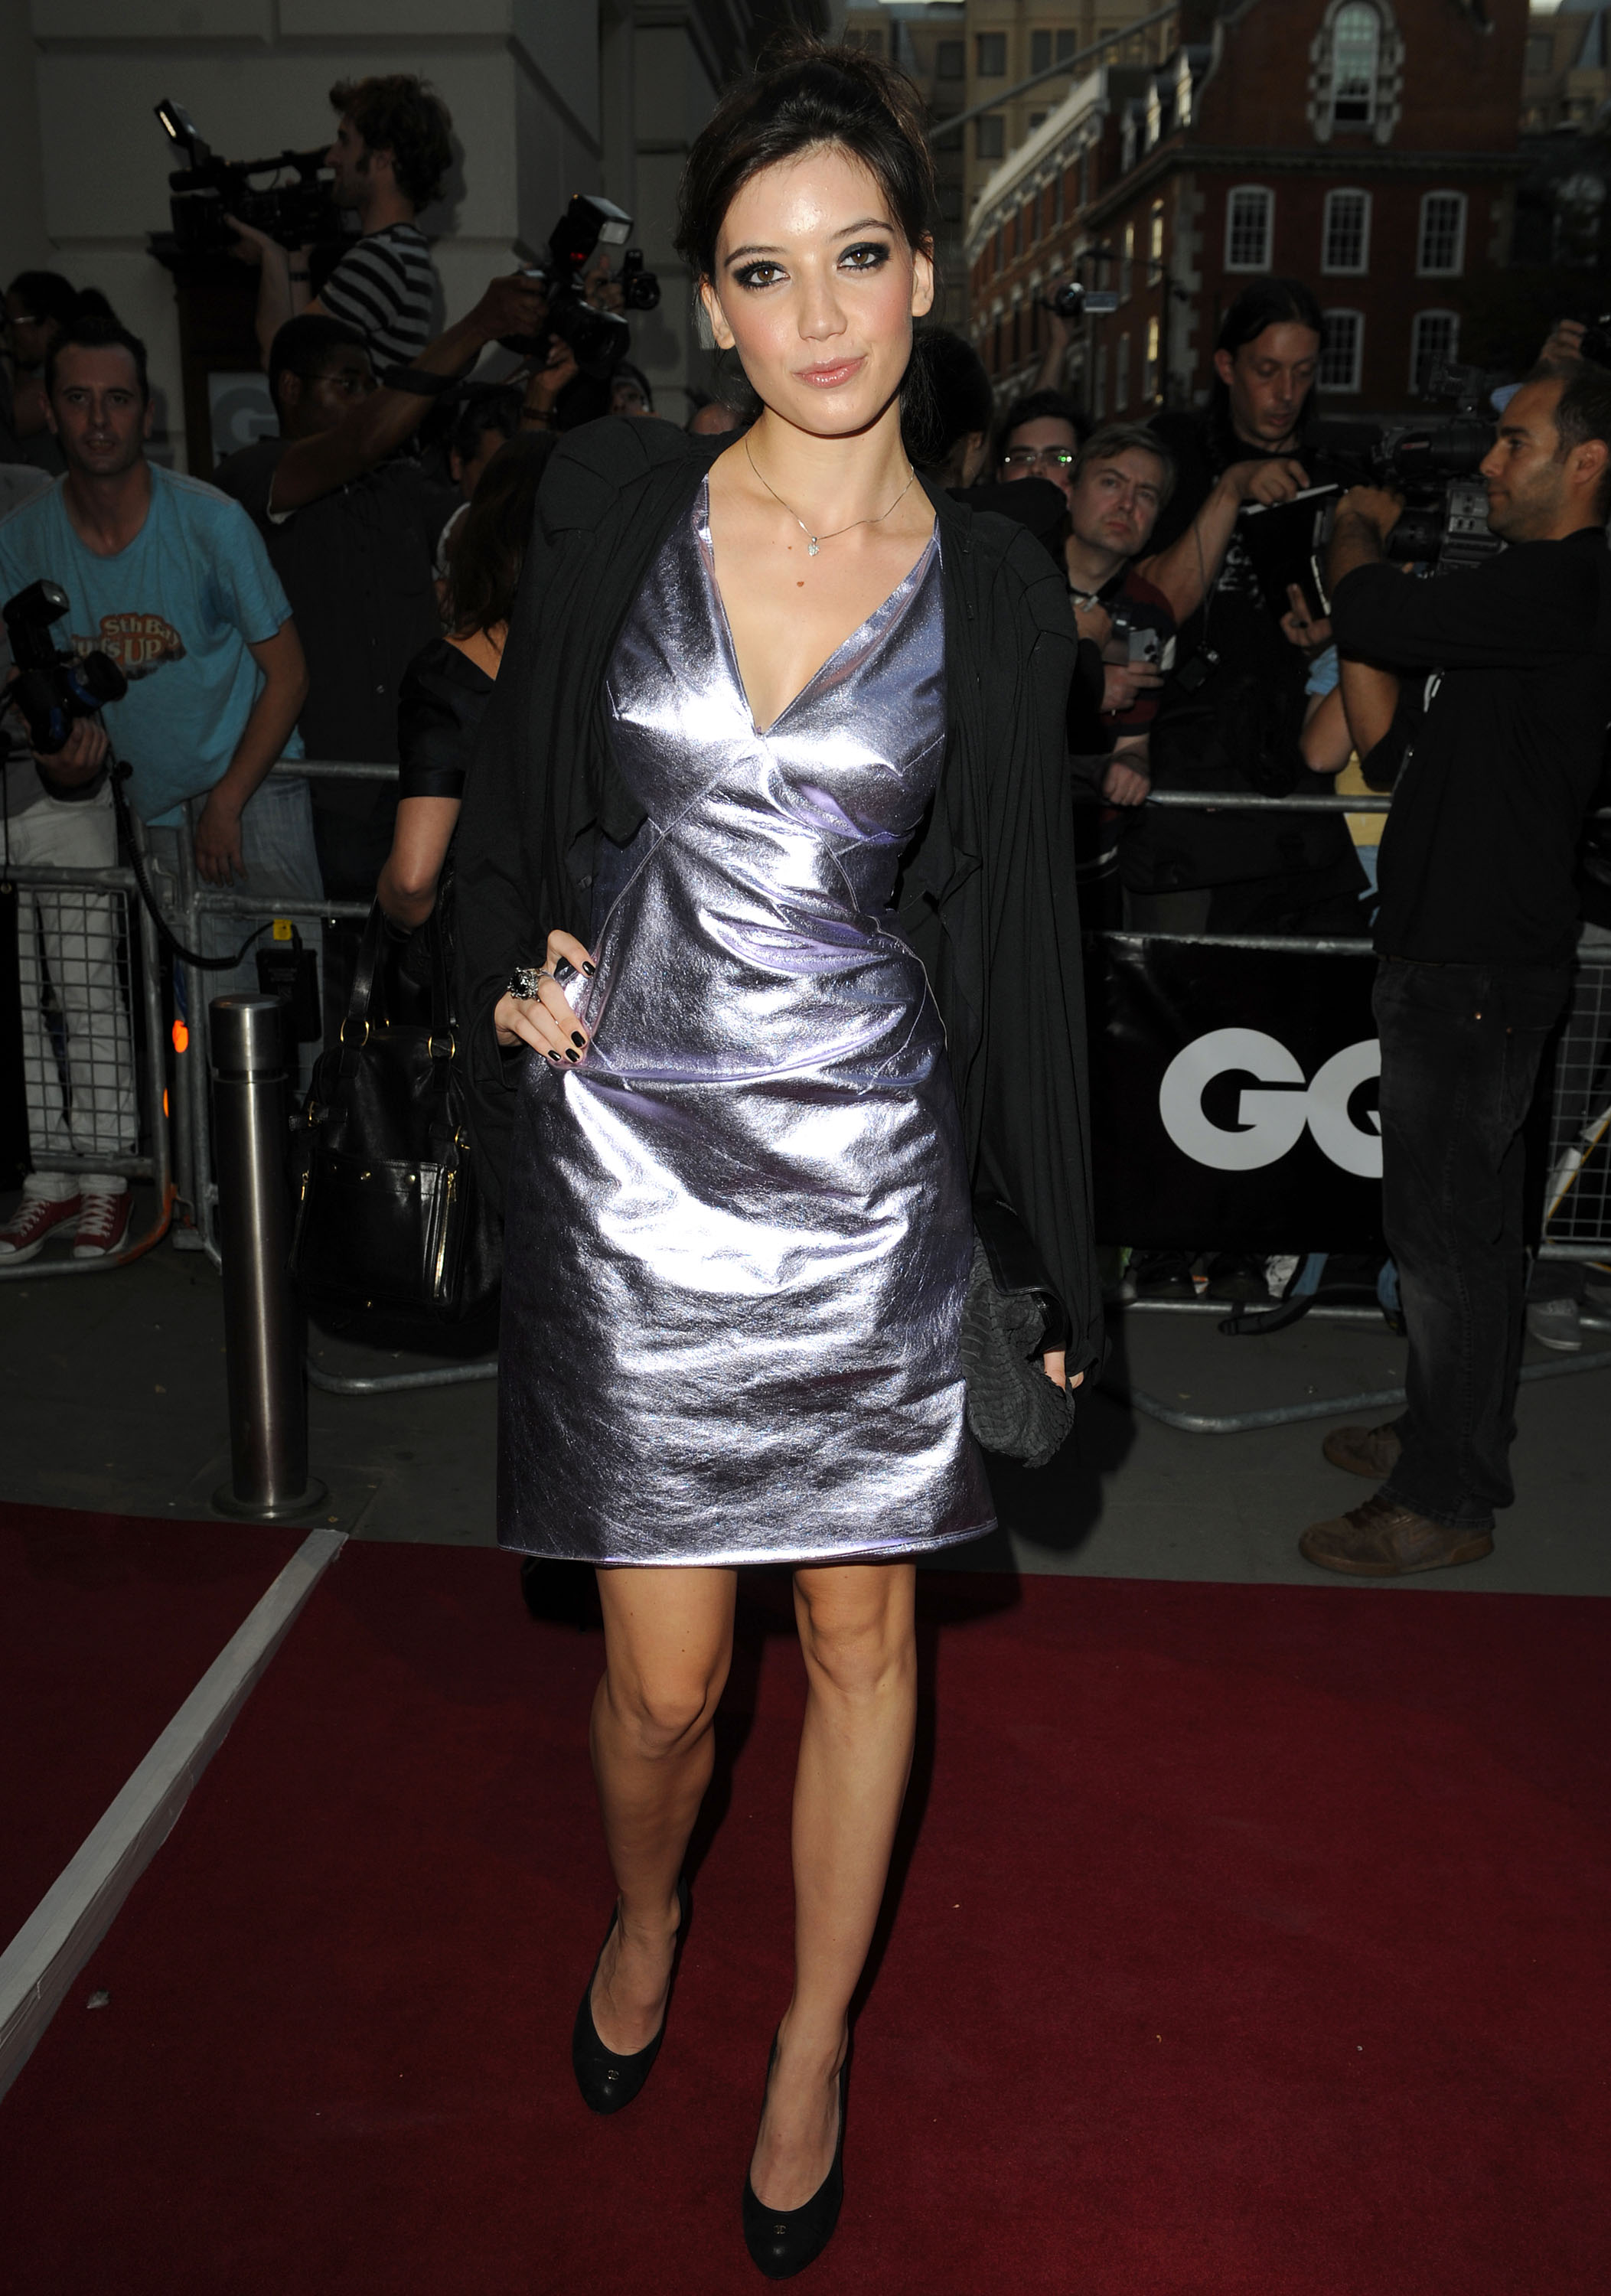 20138_Daisy_Lowe_-_GQ_Men_Of_The_Year_Awards_8th_Sept_2009_534_122_69lo.jpg